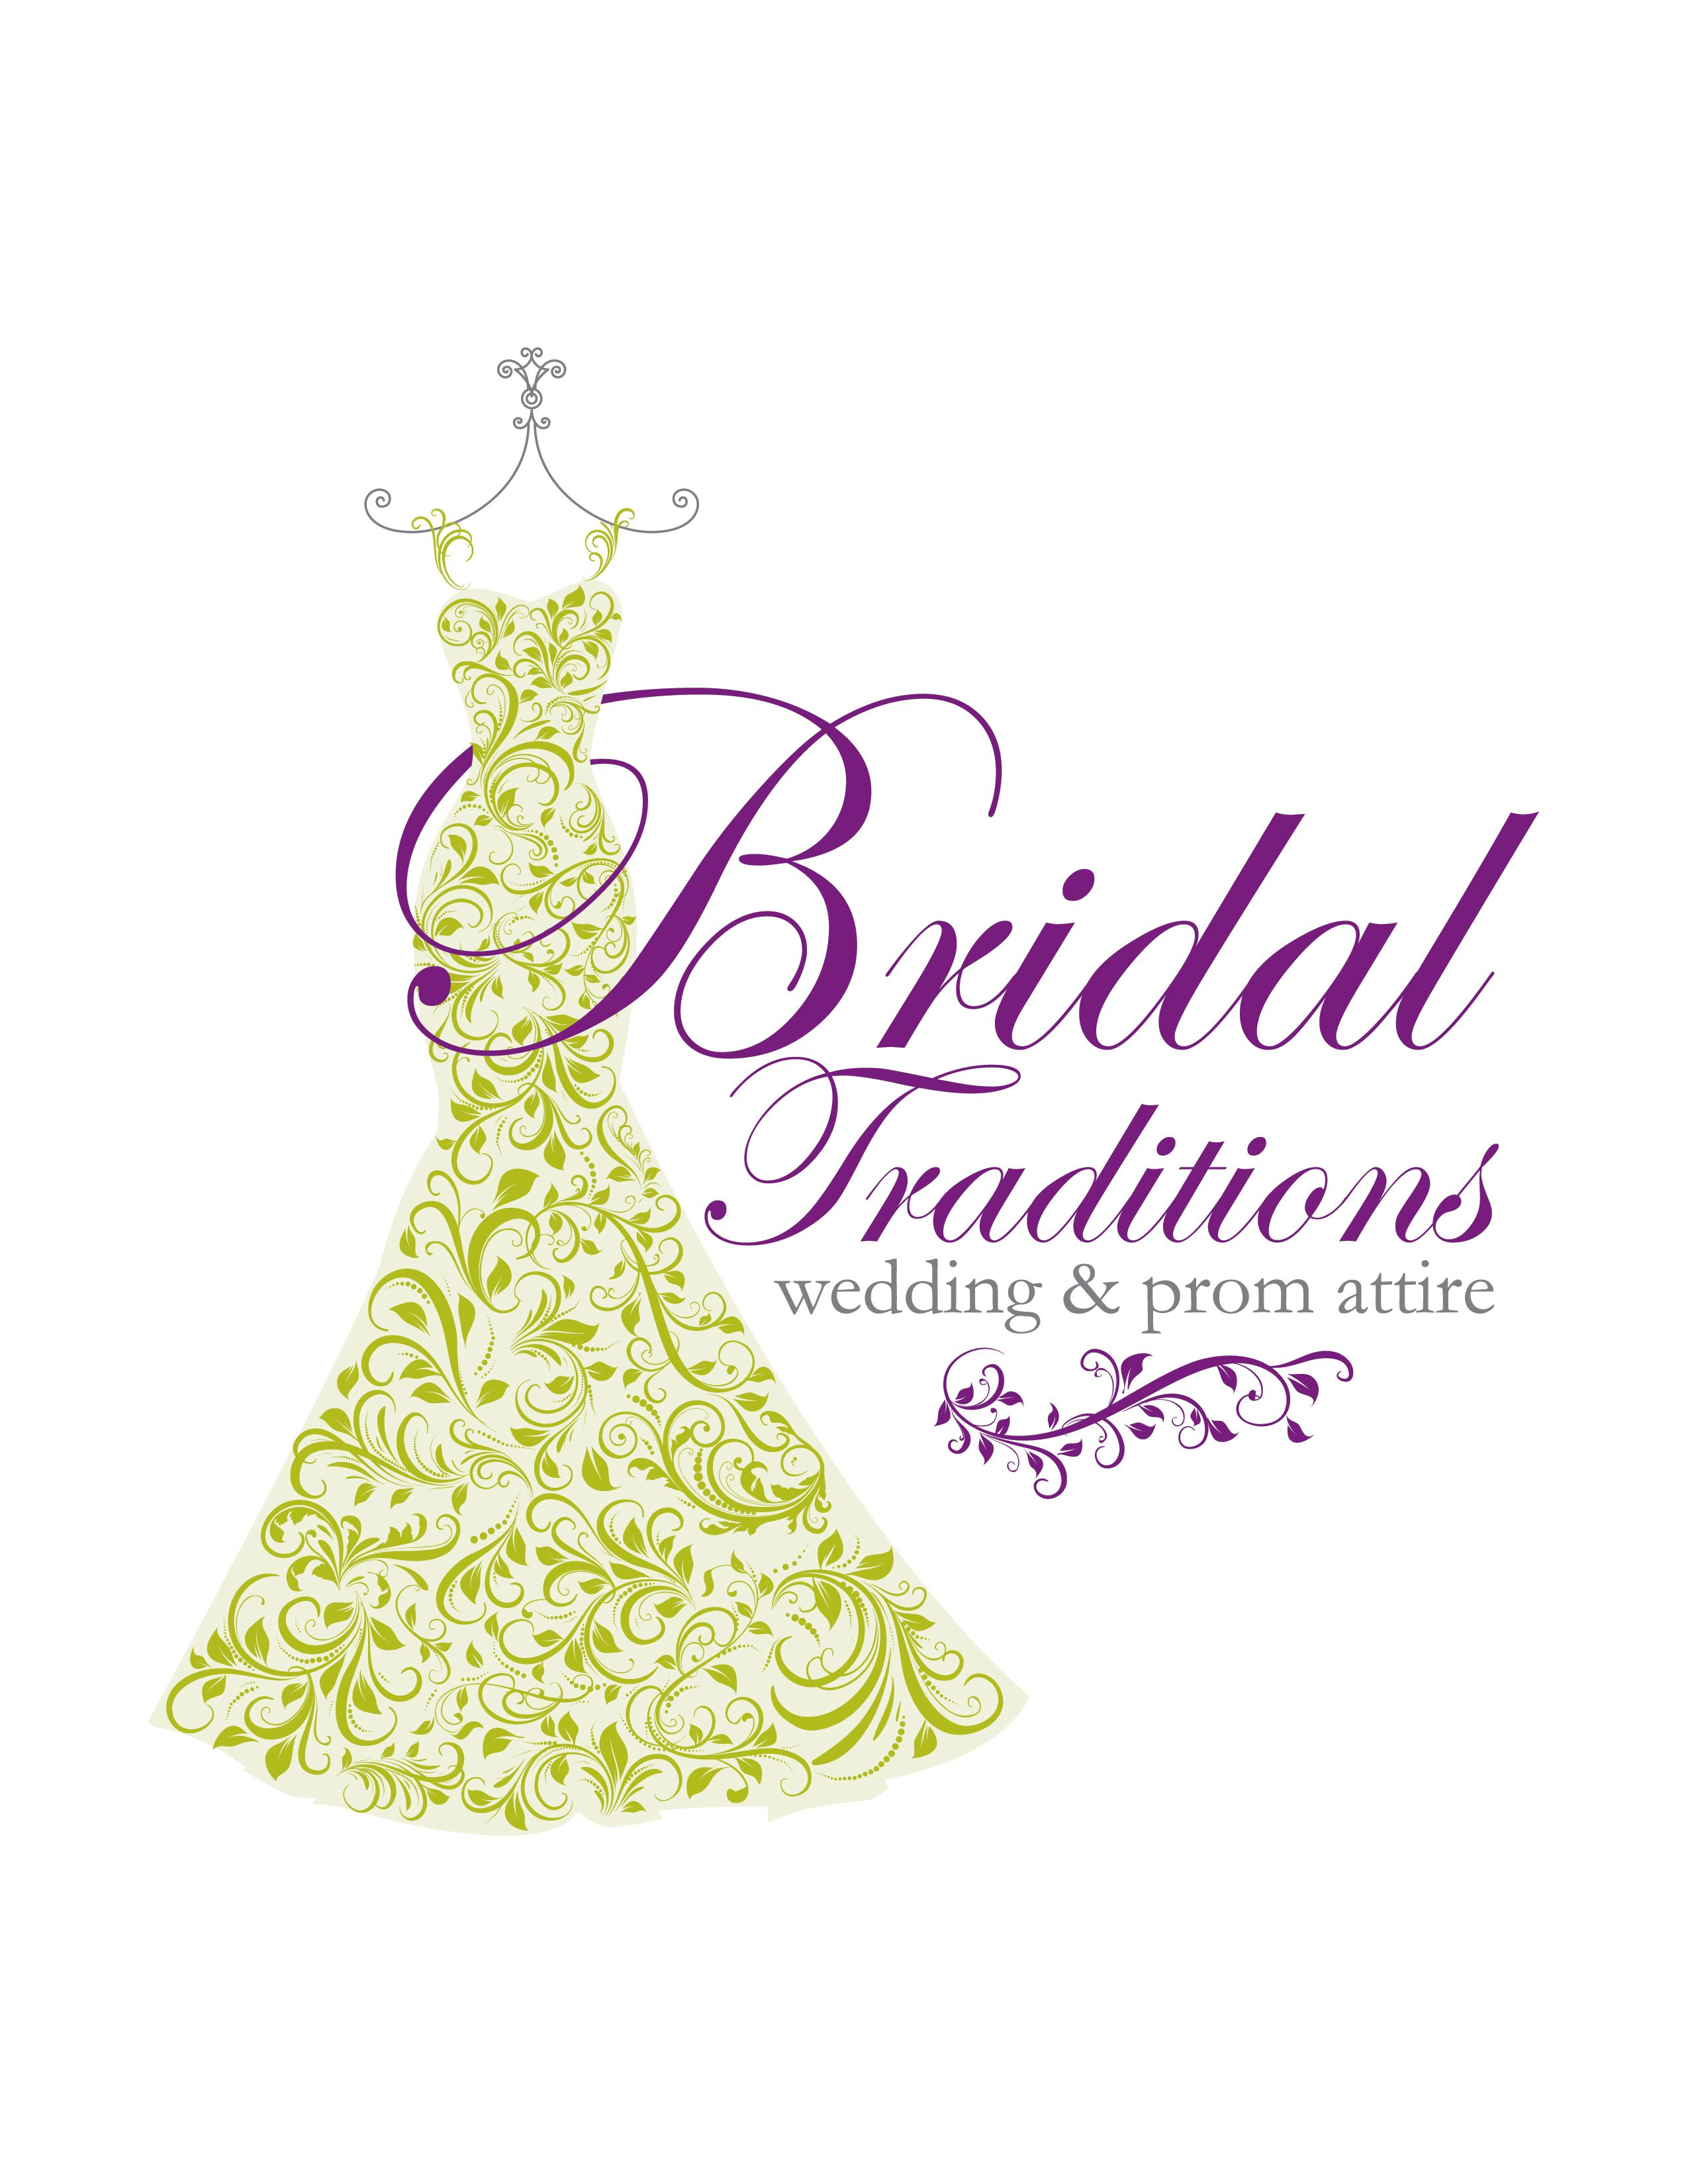 The final Vertical Logo for Bridal Traditions designed by